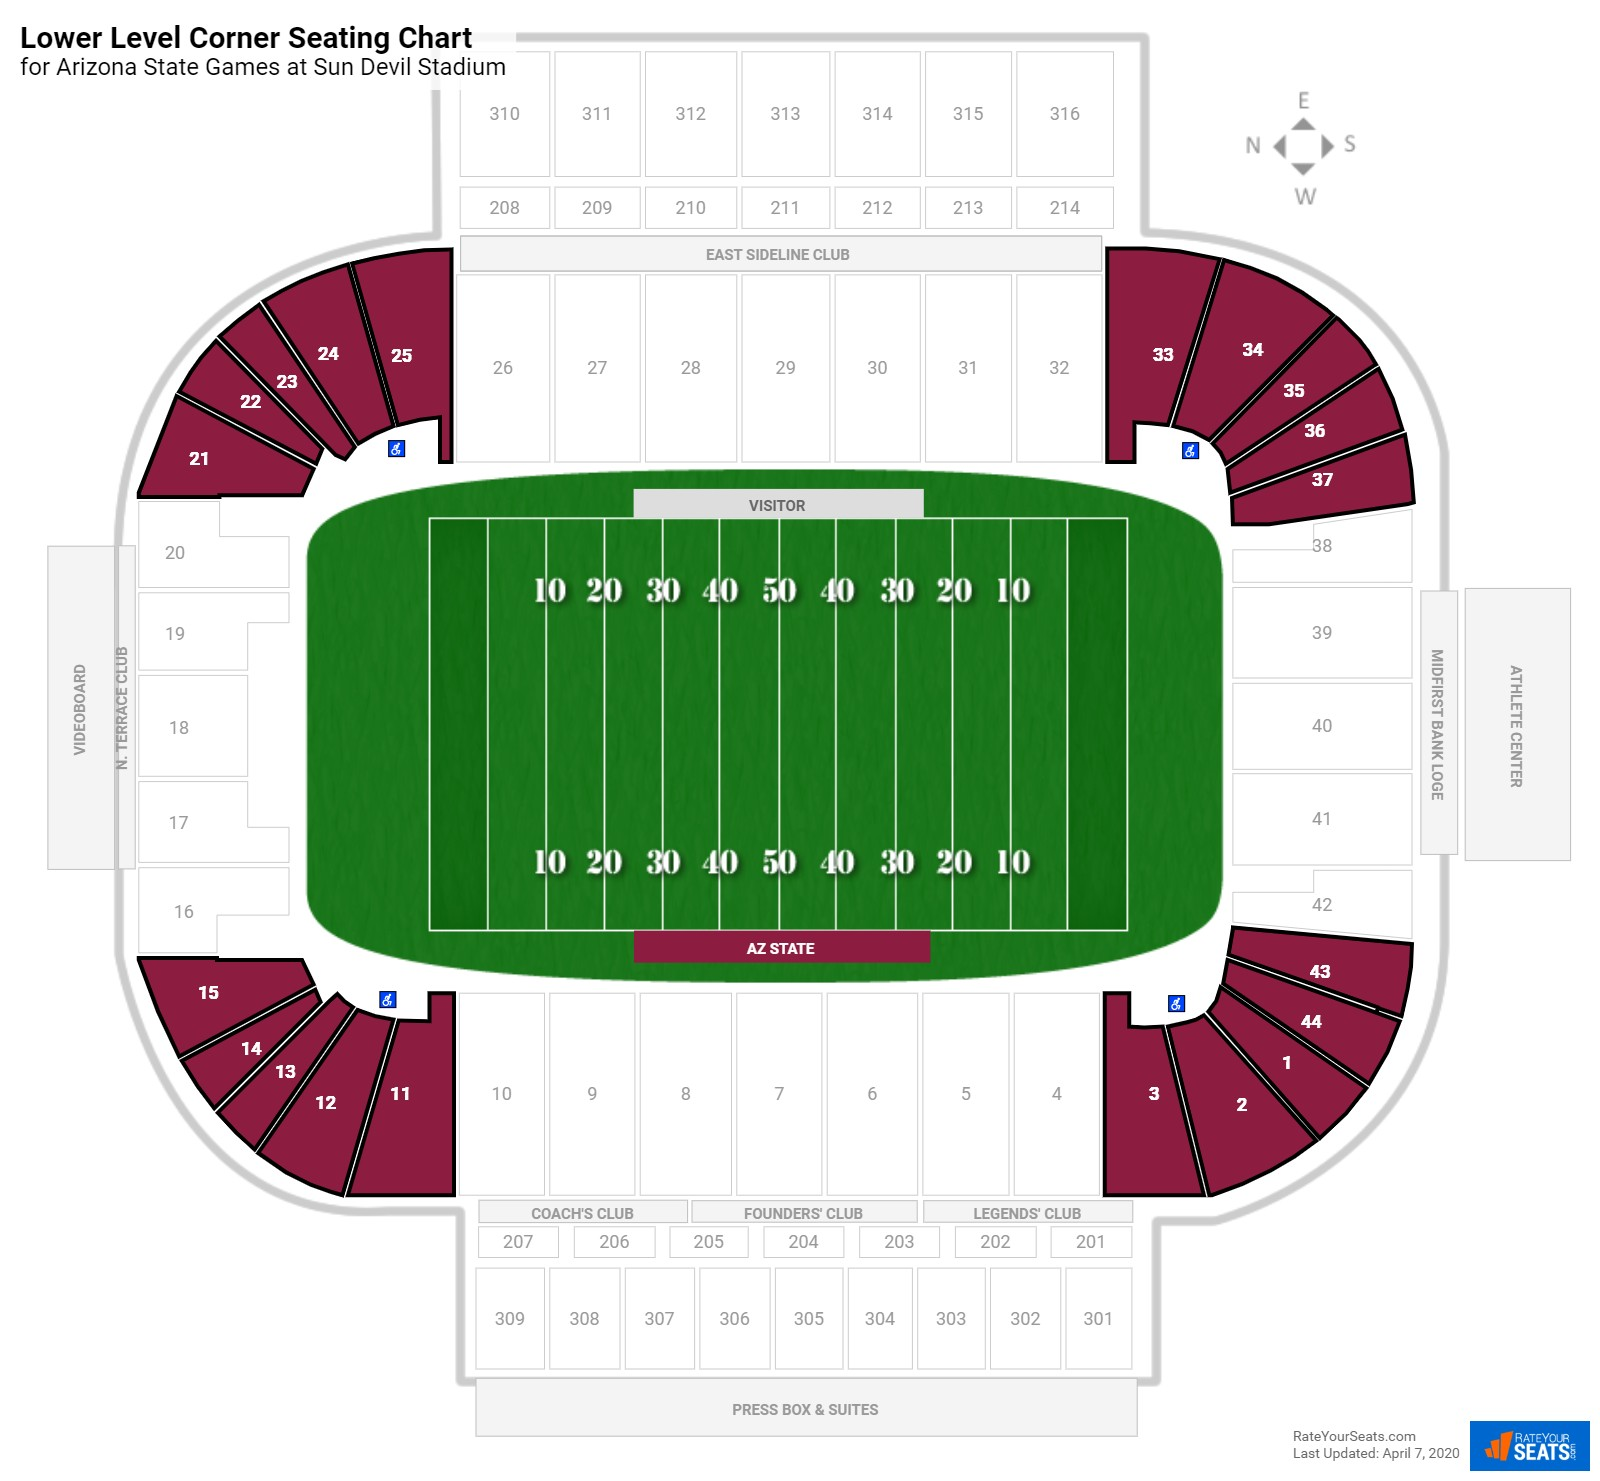 Sun Devil Stadium Lower Level Corner seating chart